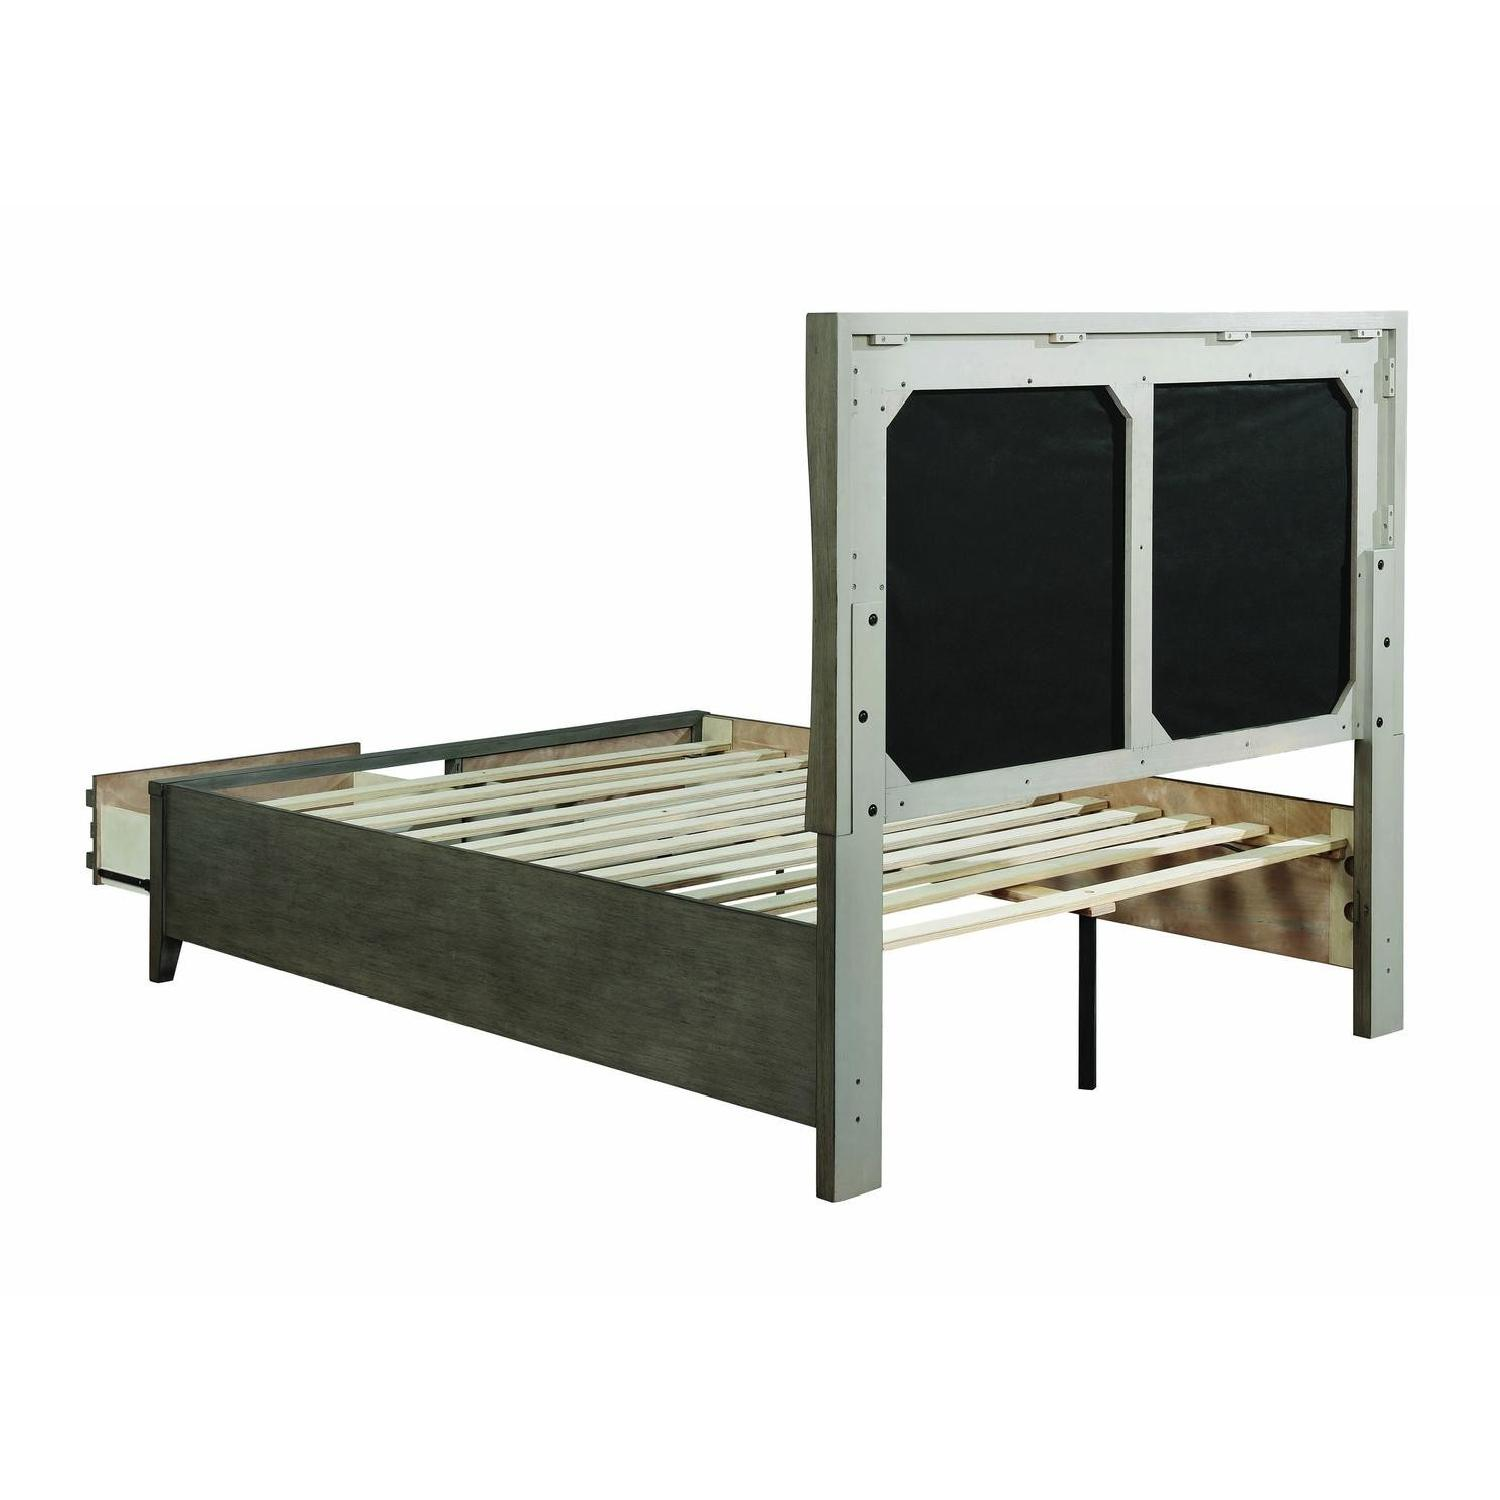 Queen Bed in Dark Taupe w/ 2 Storage Drawers - image-1